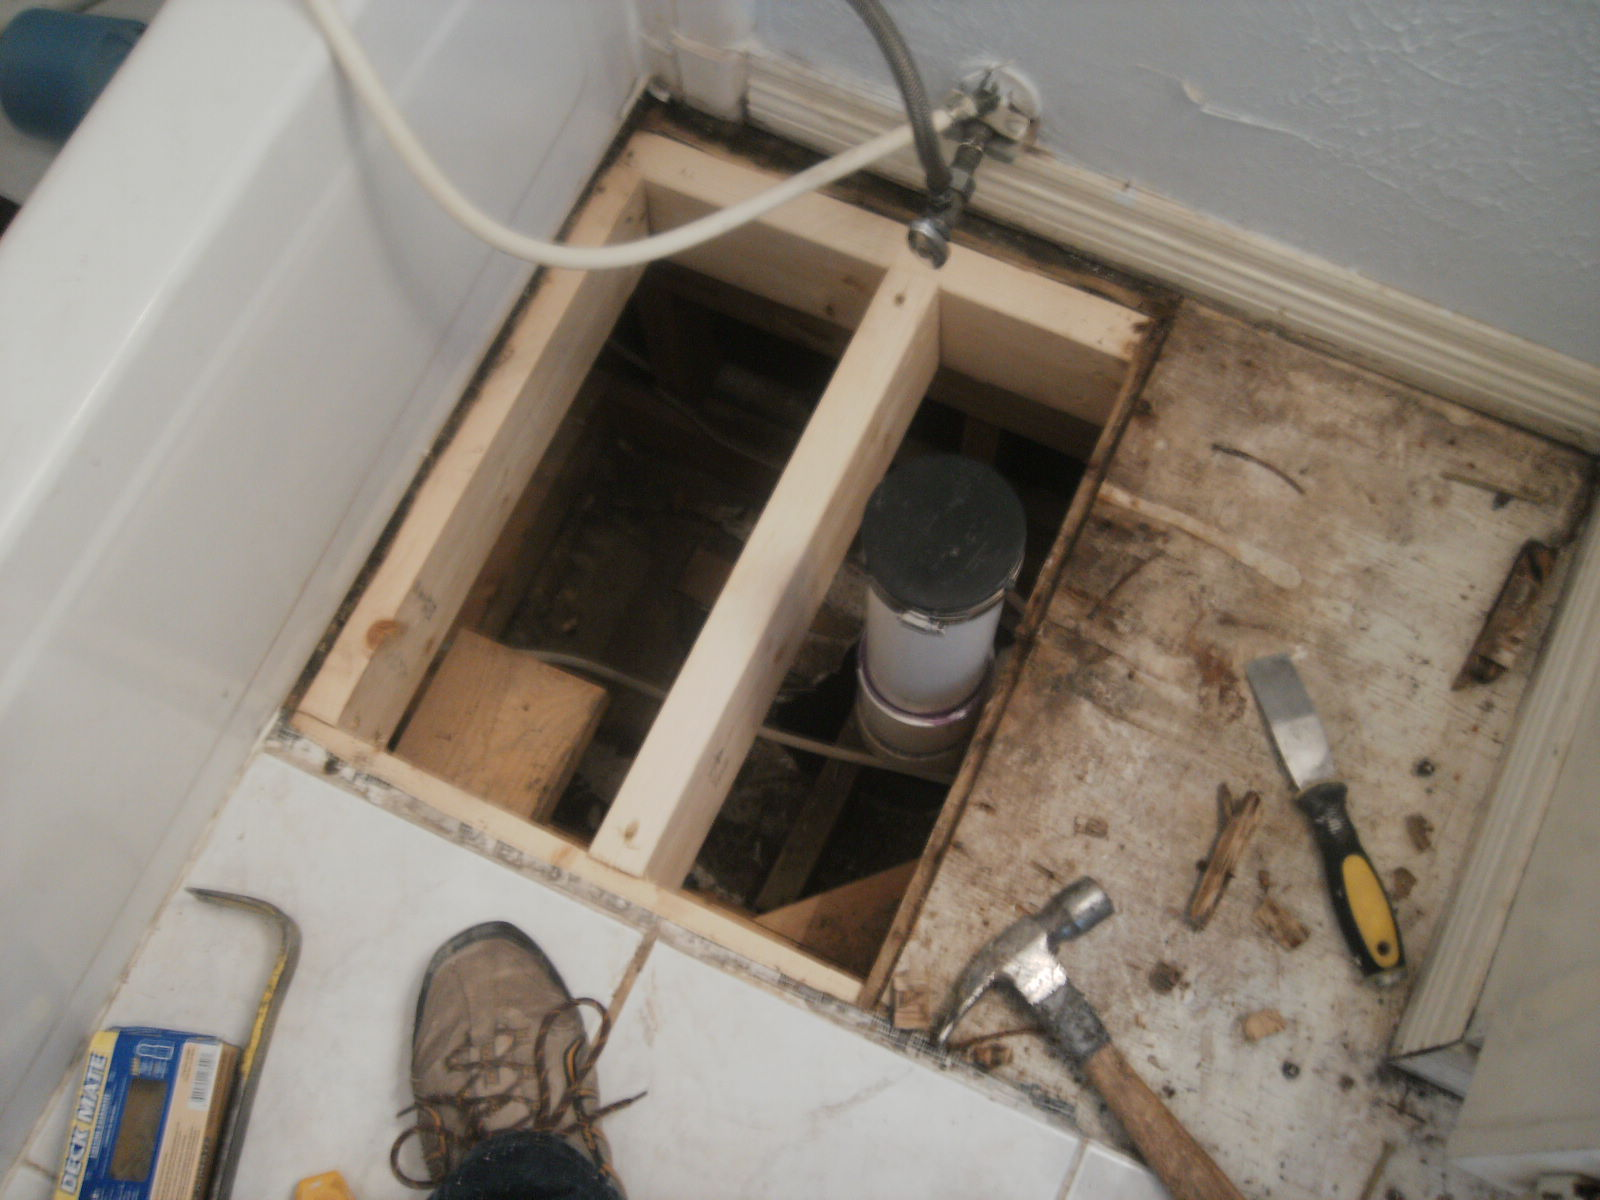 Anatomy Of A Floor Tile Repair In Photos Confessions Of A Tile Setter